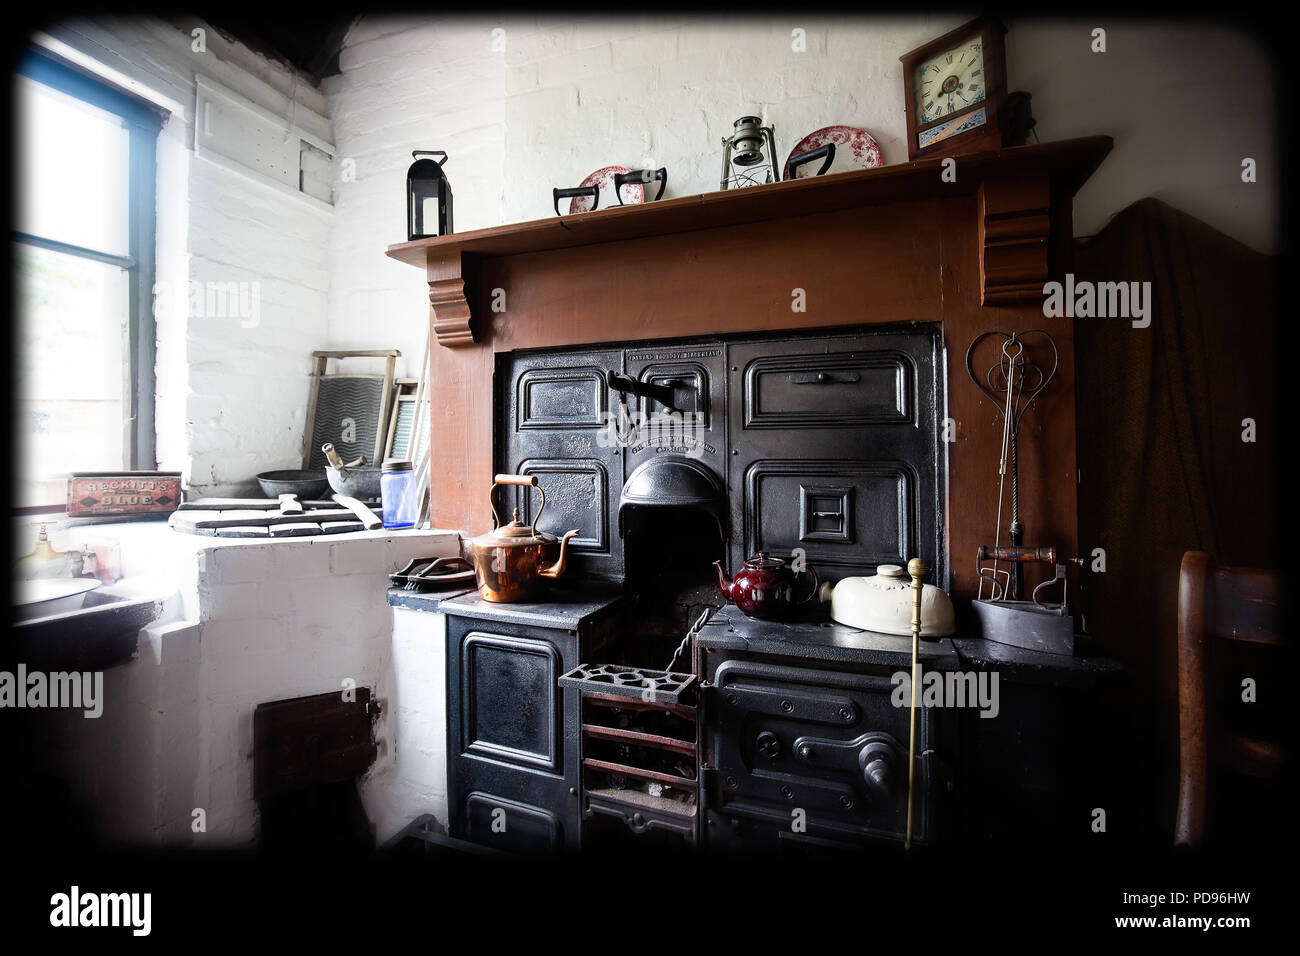 Atmospheric interior shot of the kitchen range in a house dating around 1915, situated in the grounds of the Black Country Living Museum, Dudley, UK. - Stock Image